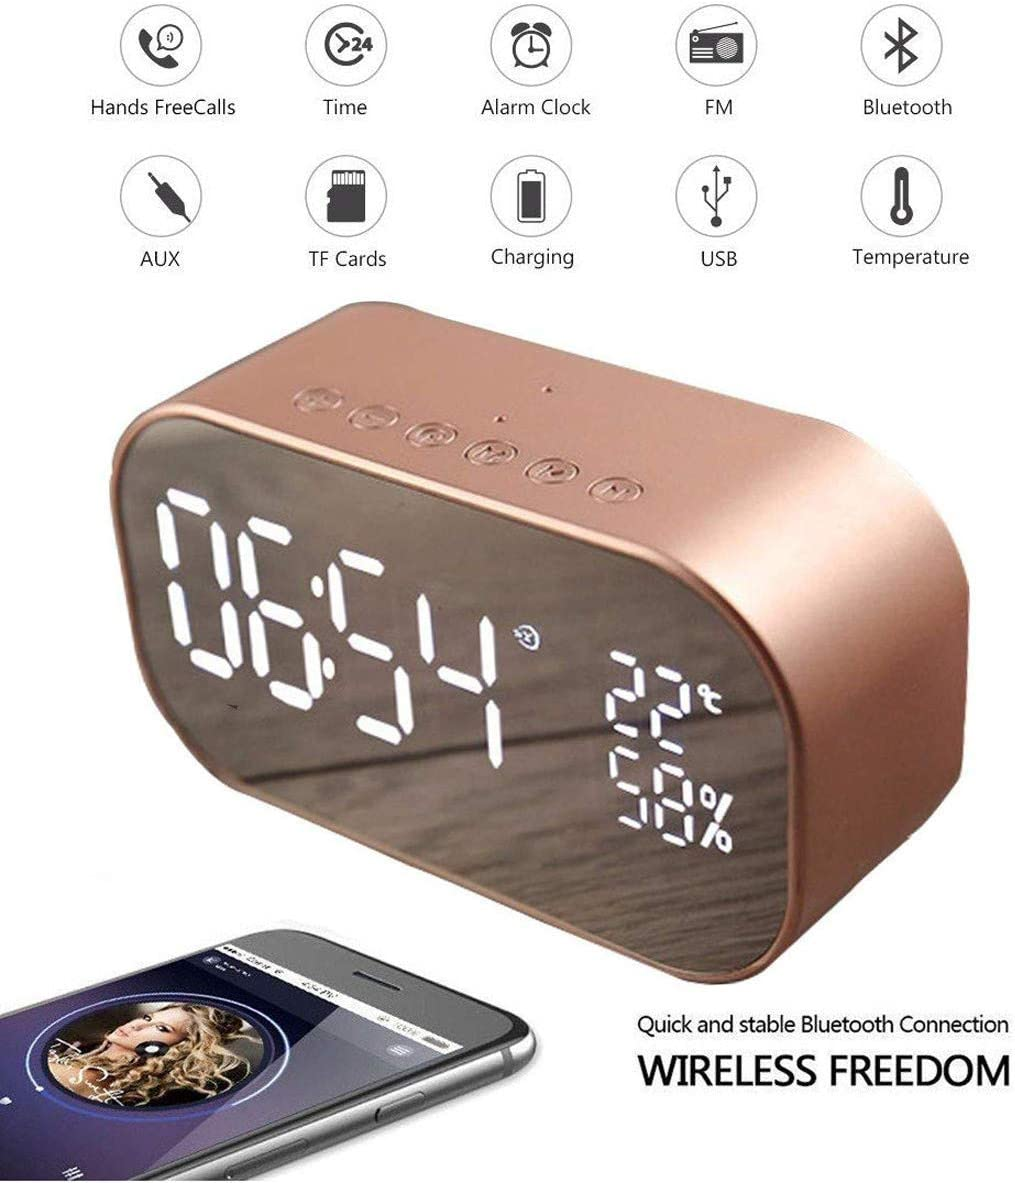 Digital Alarm Clock Wireless Speaker,AMZSTAR Metal Bluetooth Speaker,10W Subwoofers Dual Driver Stereo Speaker,Desk Alarm Clock and Large LED Display, for Kid, Home, Office, Daily Life Rose Gold